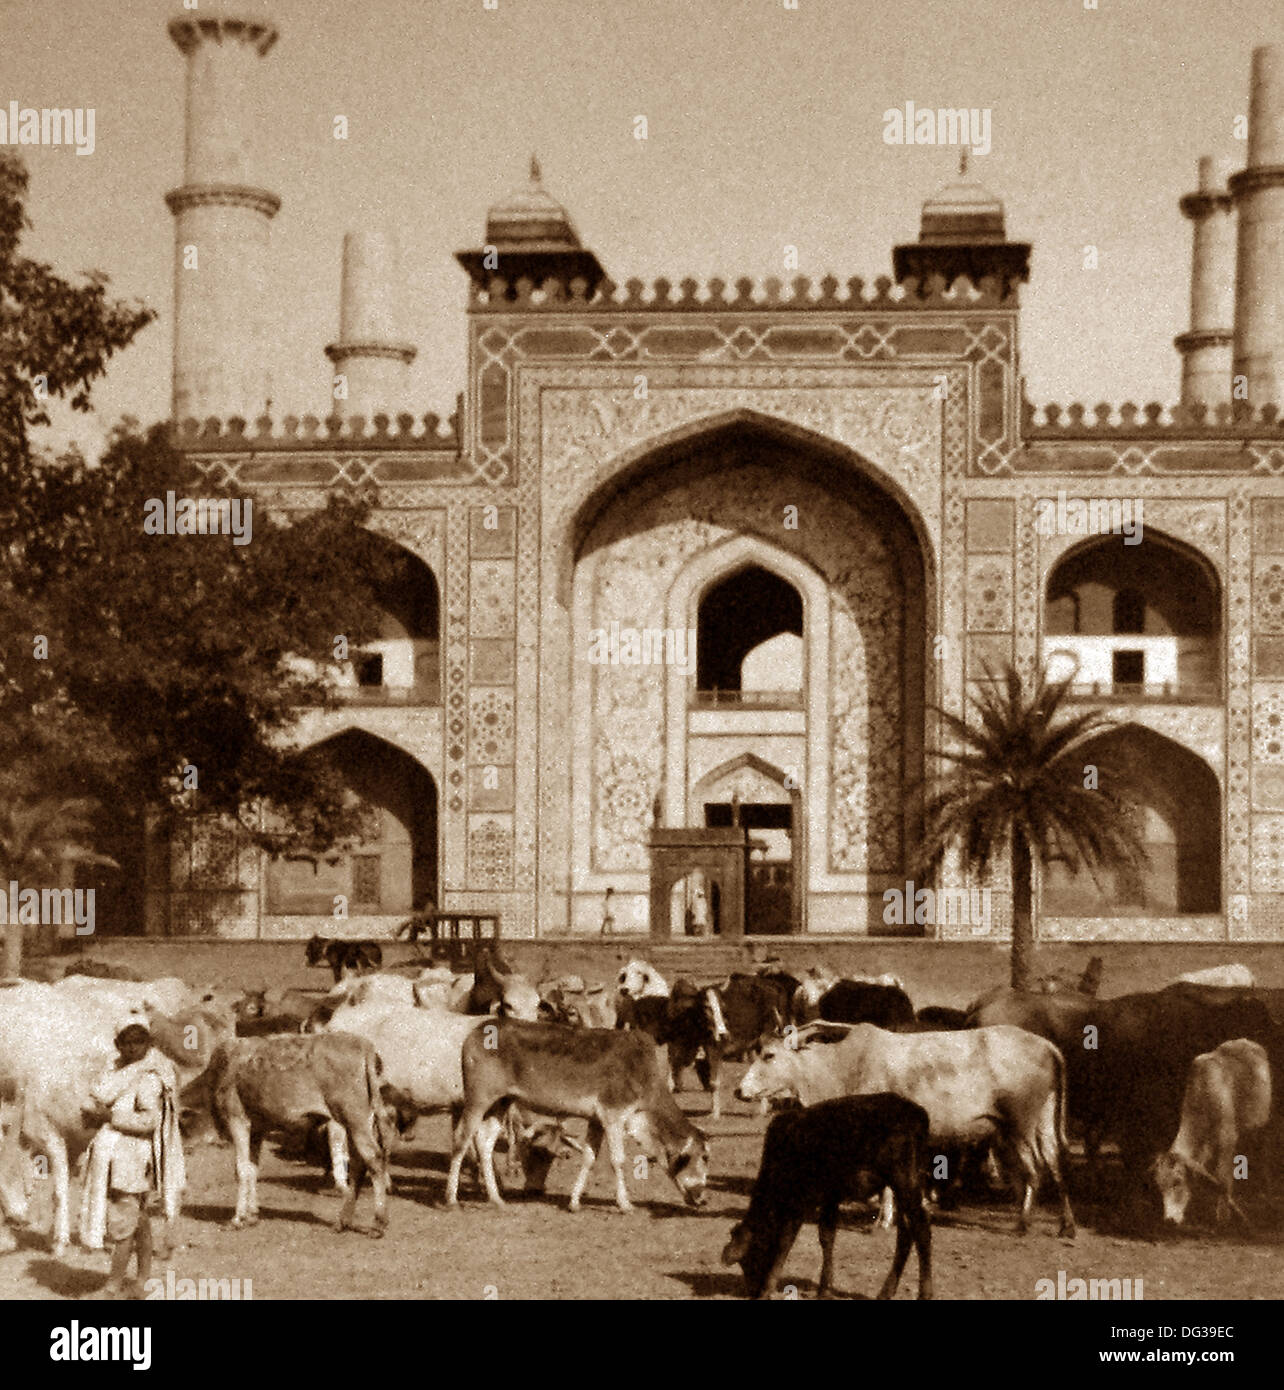 India - Sikandra Agra Tomb of Akbar the Great early 1900s - Stock Image